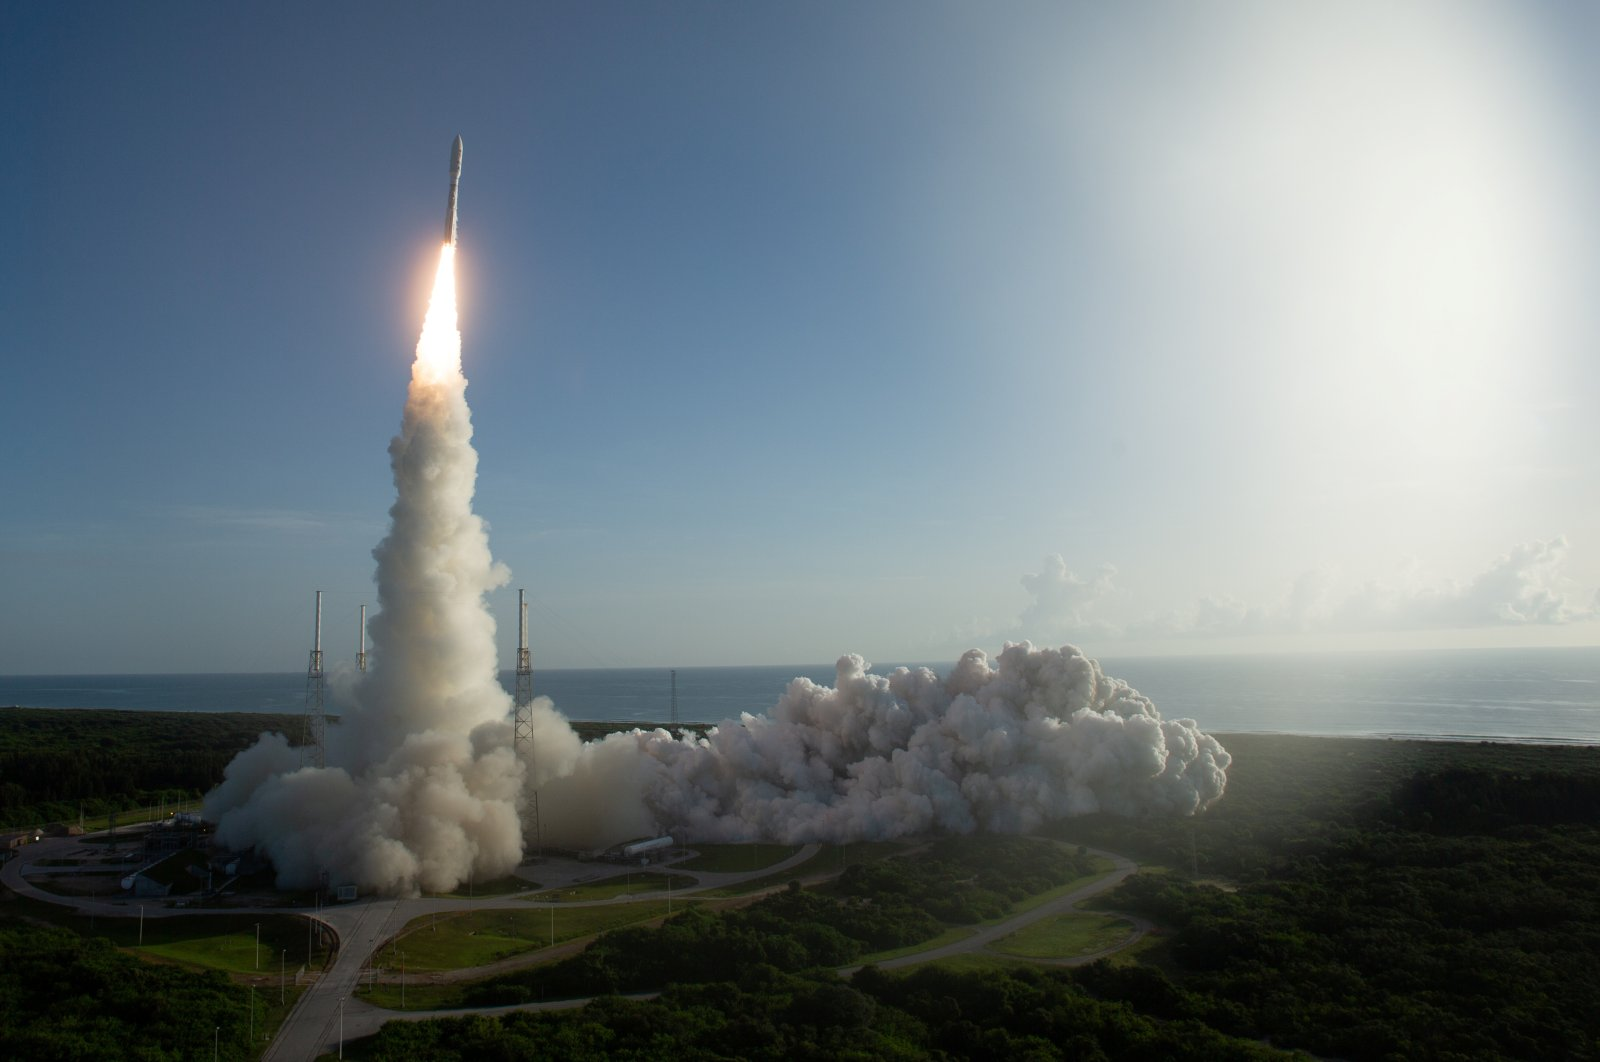 A United Launch Alliance Atlas V rocket carrying NASA's Mars 2020 Perseverance Rover vehicle takes off from Cape Canaveral Air Force Station in Cape Canaveral, Florida, U.S. July 30, 2020.  (NASA/Joel Kowsky/Handout via Reuters).